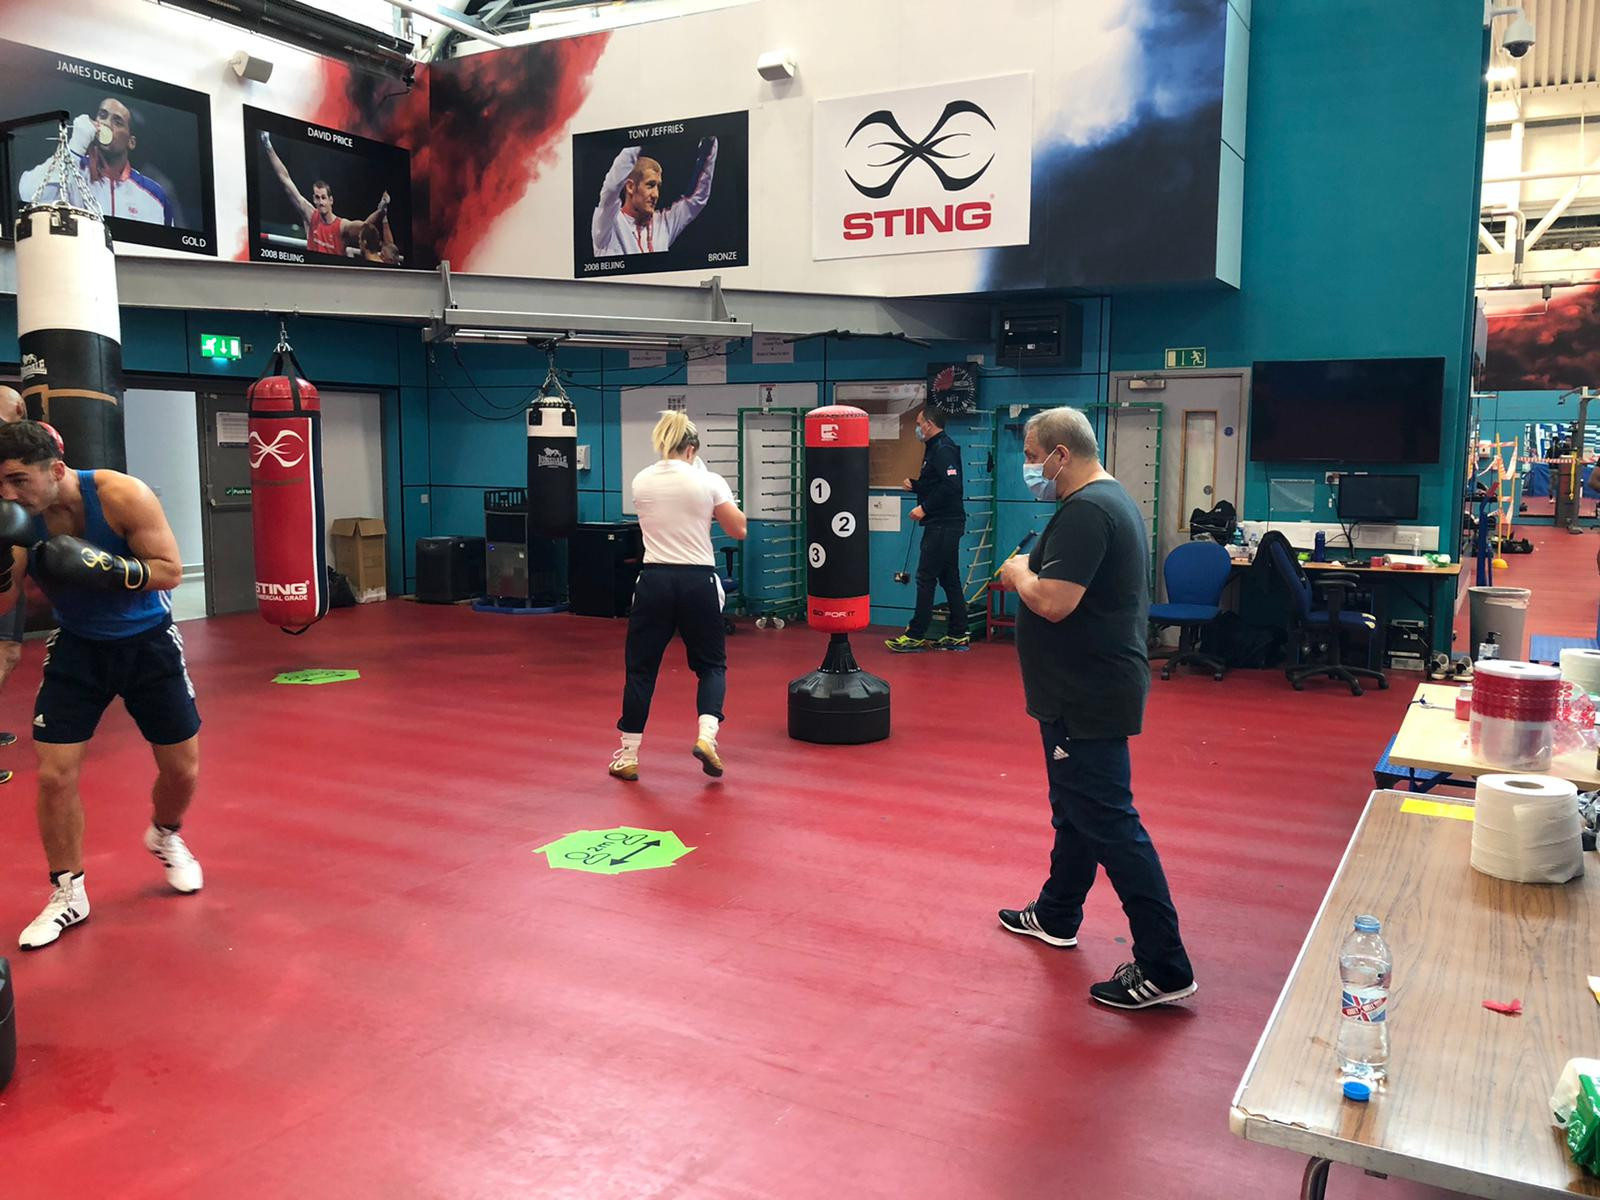 Boxing training has resumed in Britain under various restrictions ©GB Boxing